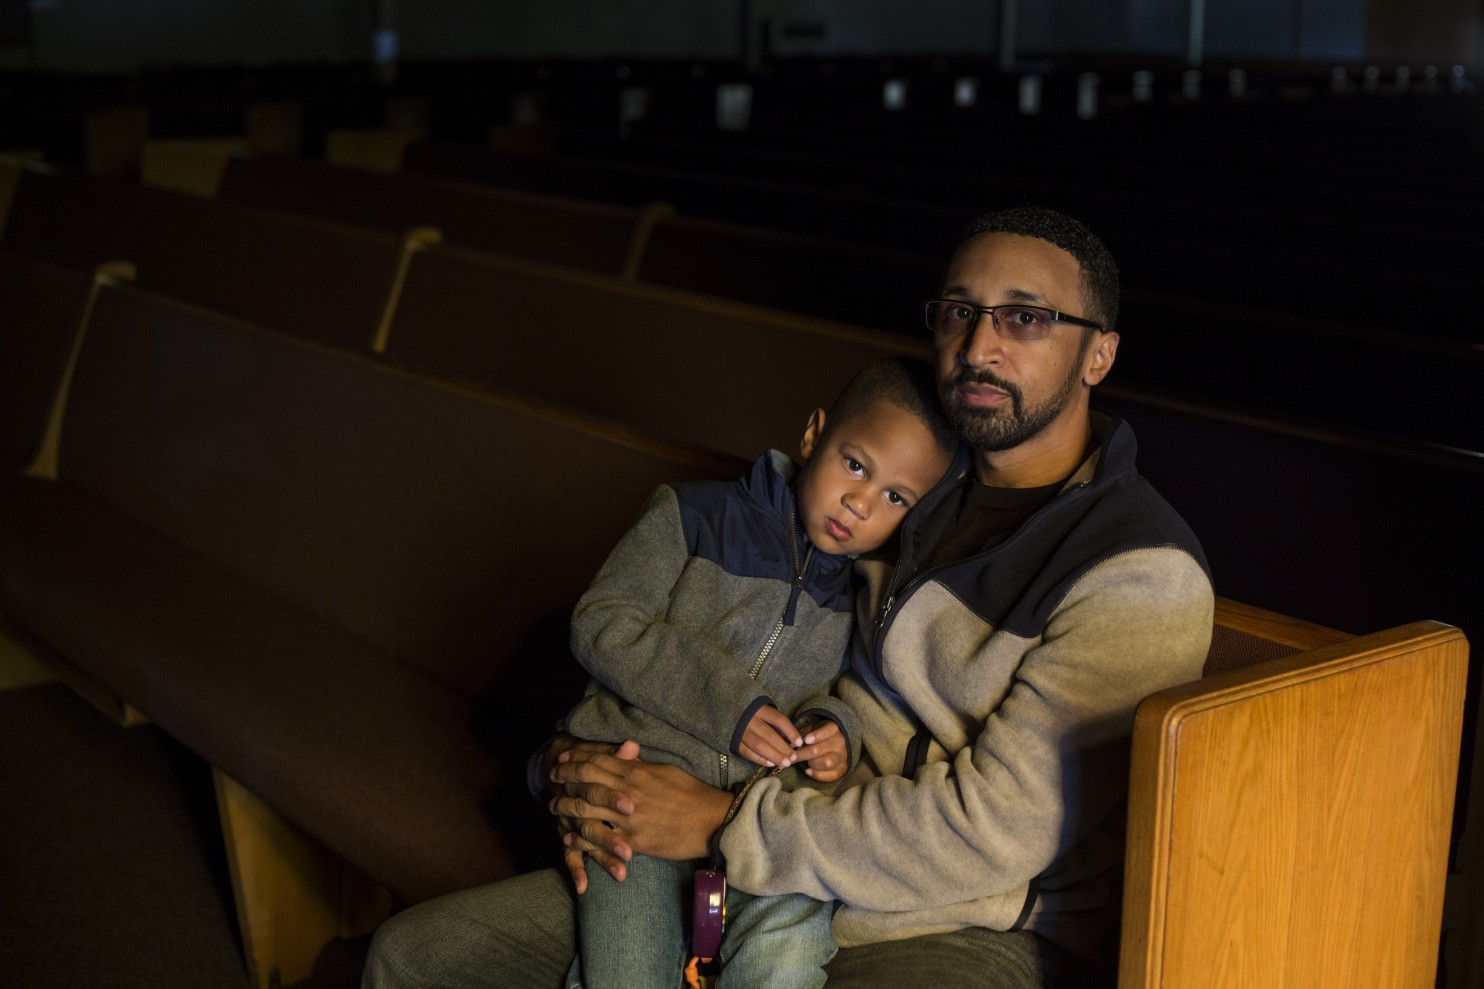 The Rev. Rigel Dawson, who leads North Central Church of Christ in Flint, took on the responsibility of distributing bottled water to his congregation. With him is his son, Roman. (Brittany Greeson/The Washington Post)